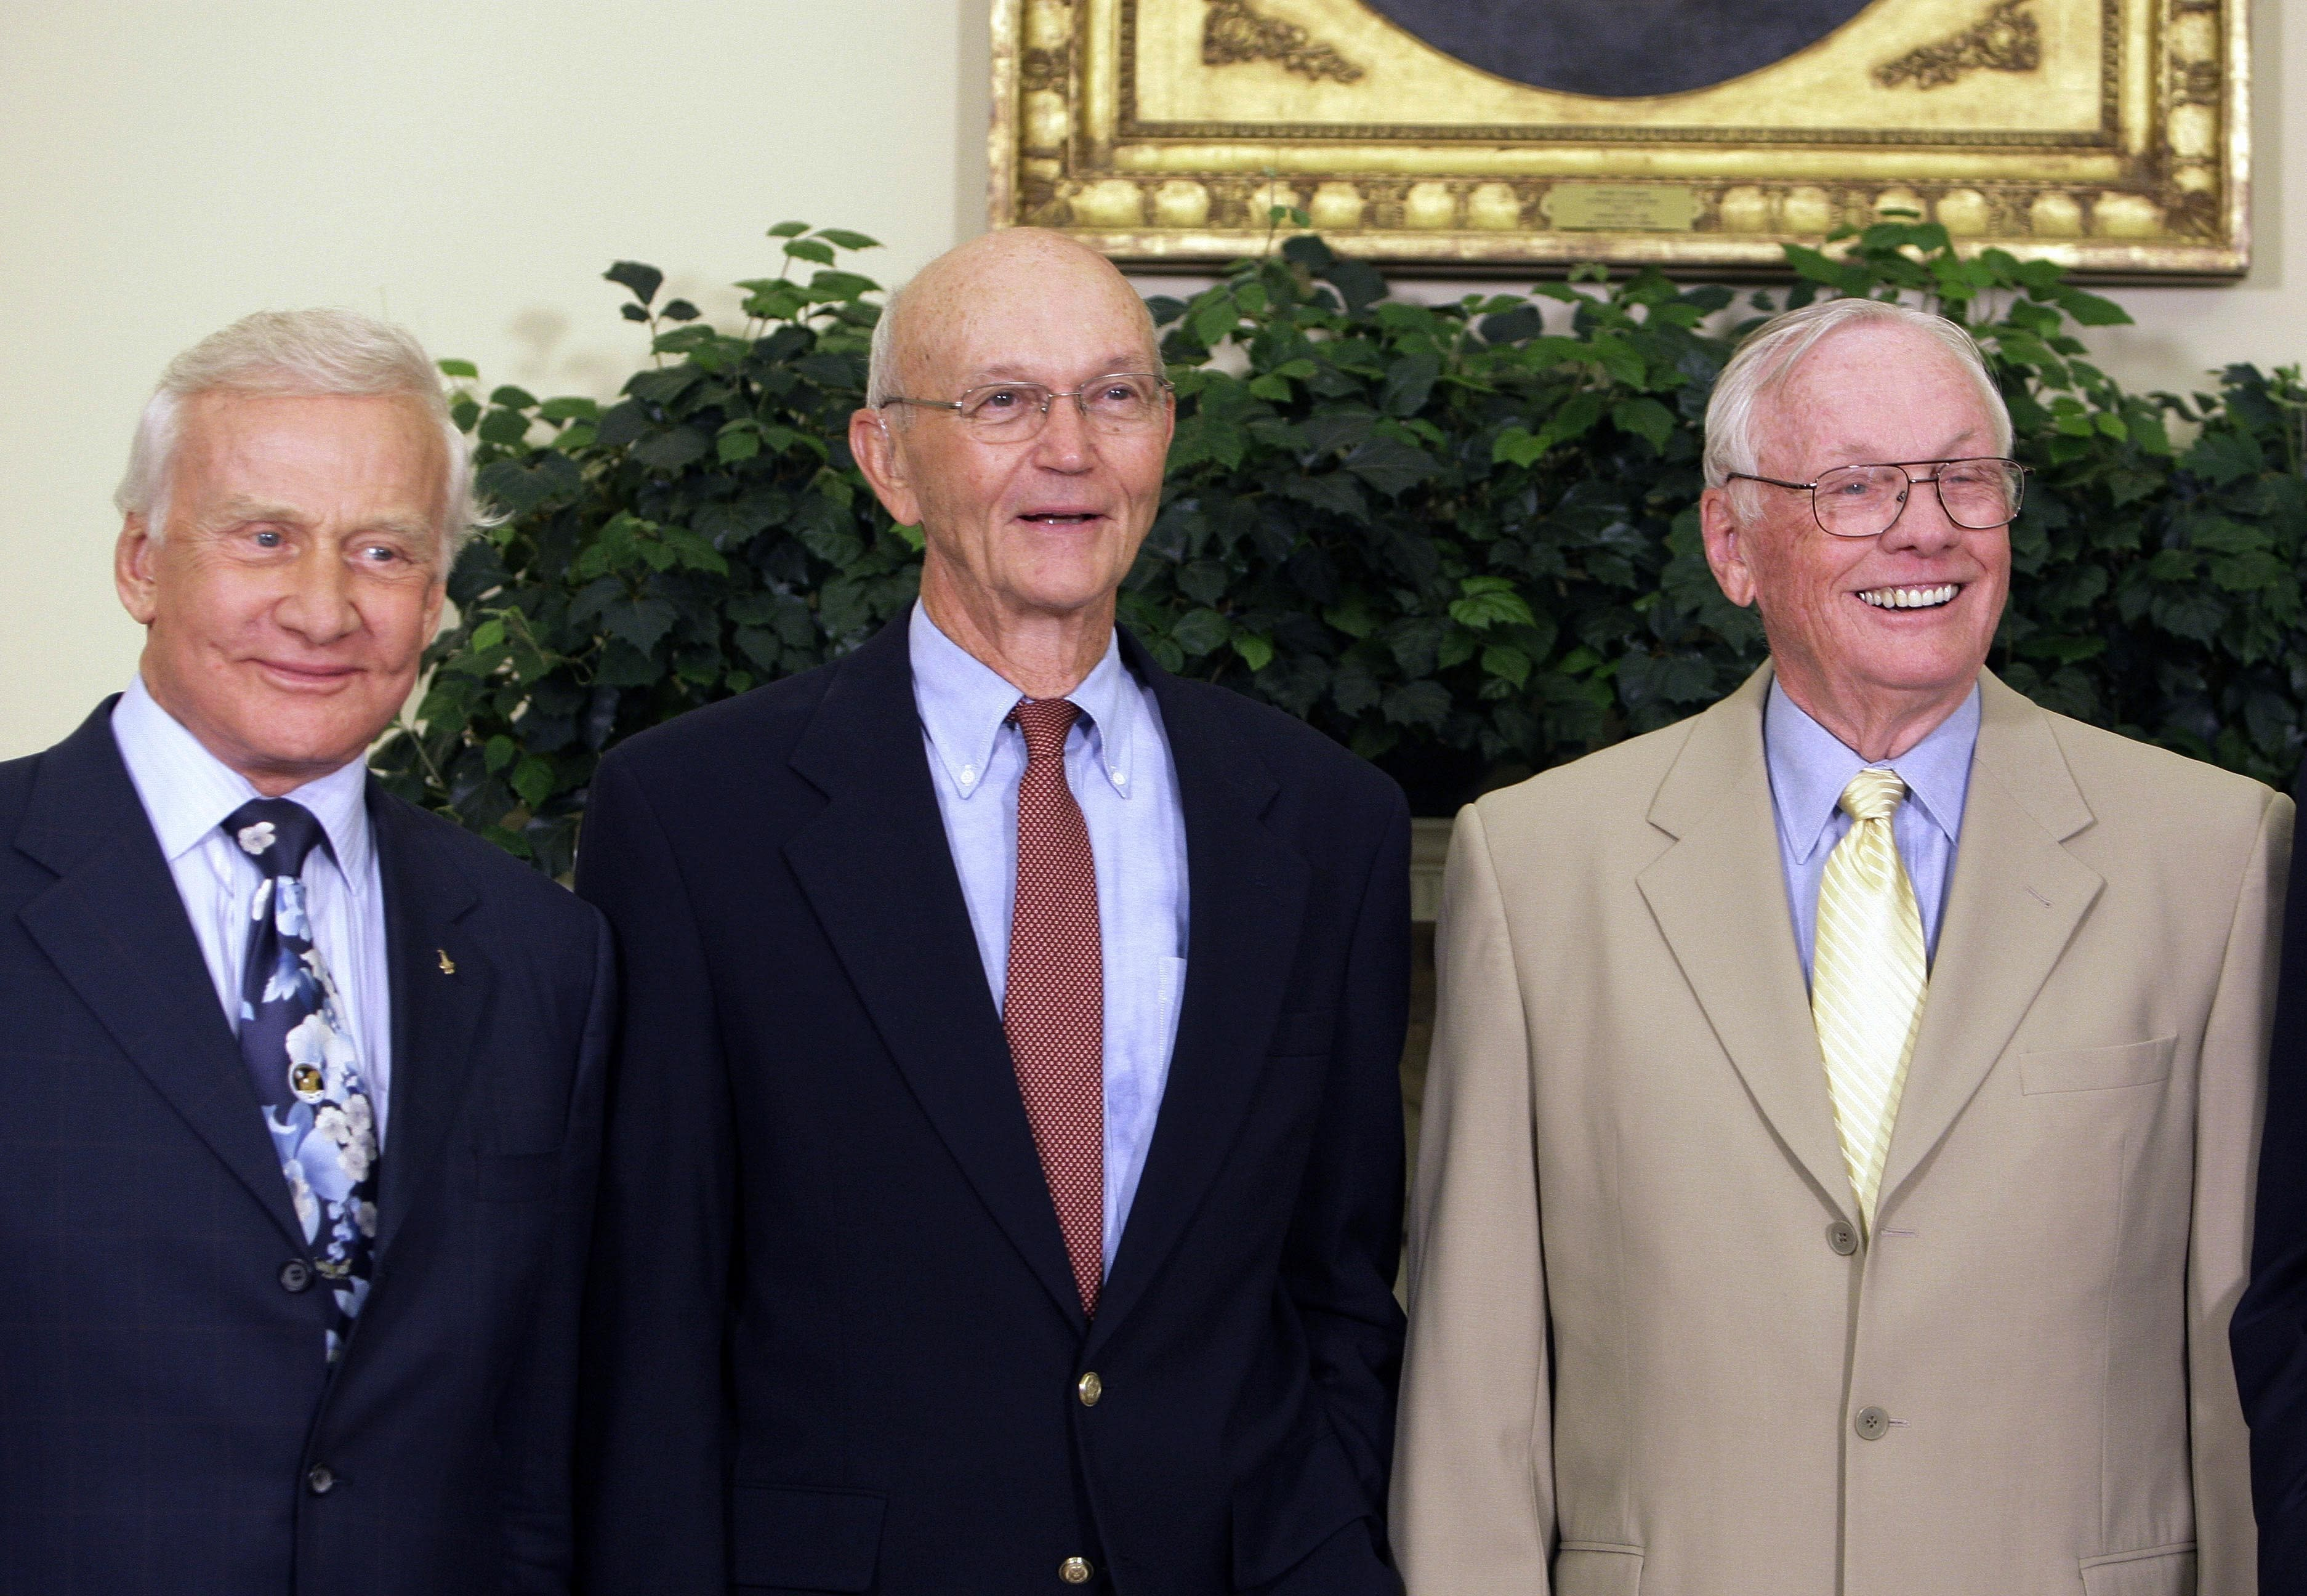 In this July 20, 2009 file photo, Apollo 11 astronauts, from left, Buzz Aldrin, Michael Collins and Neil Armstrong stand in the Oval Office at the White House in Washington, on the 40th anniversary of the mission's moon landing. (AP Photo/Alex Brandon)